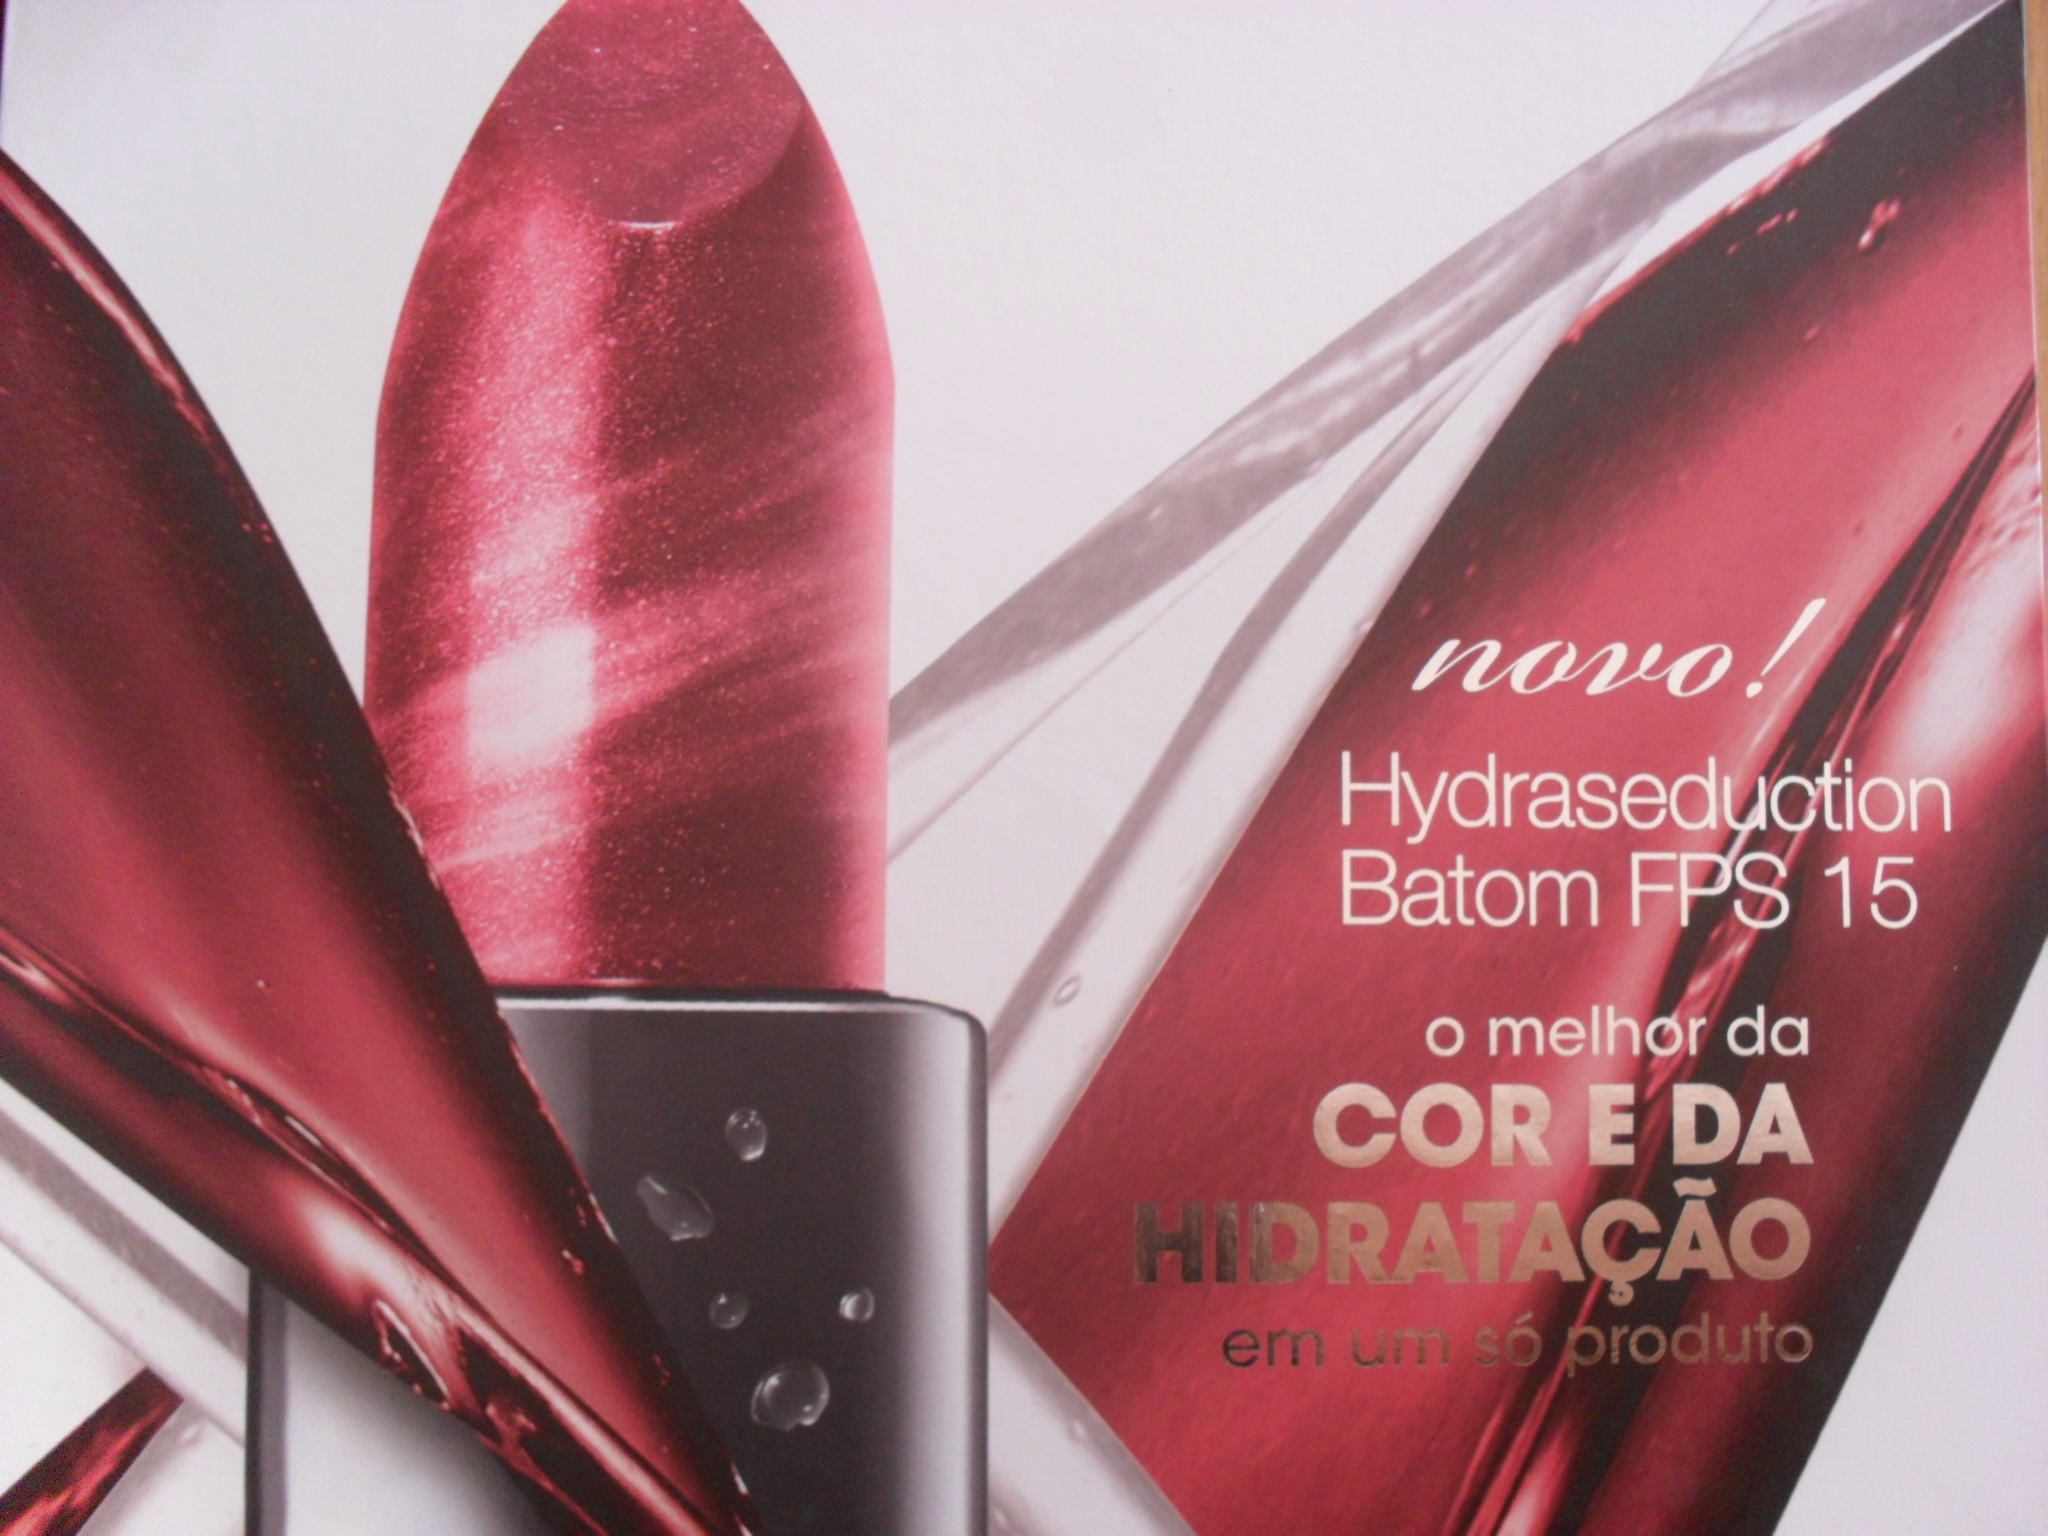 Batom Hydraseduction Avon